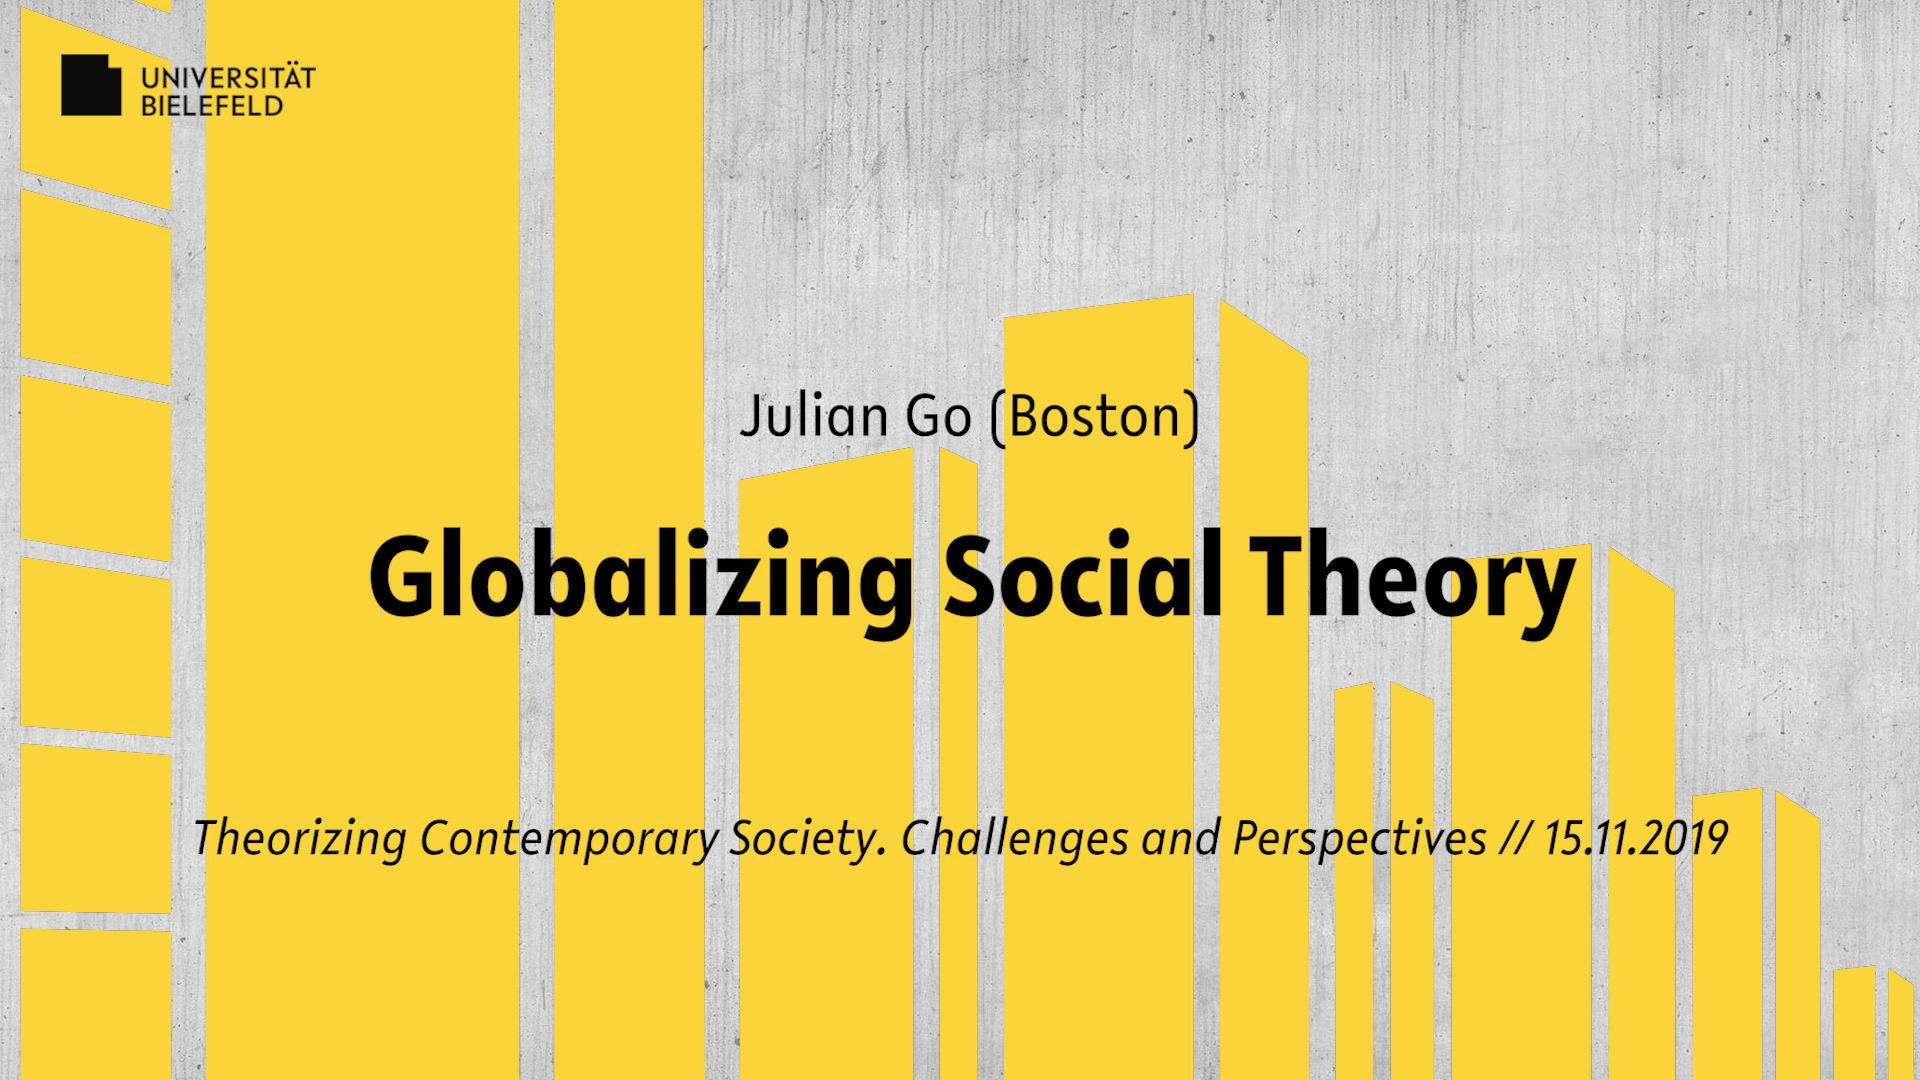 Globalizing Social Theory